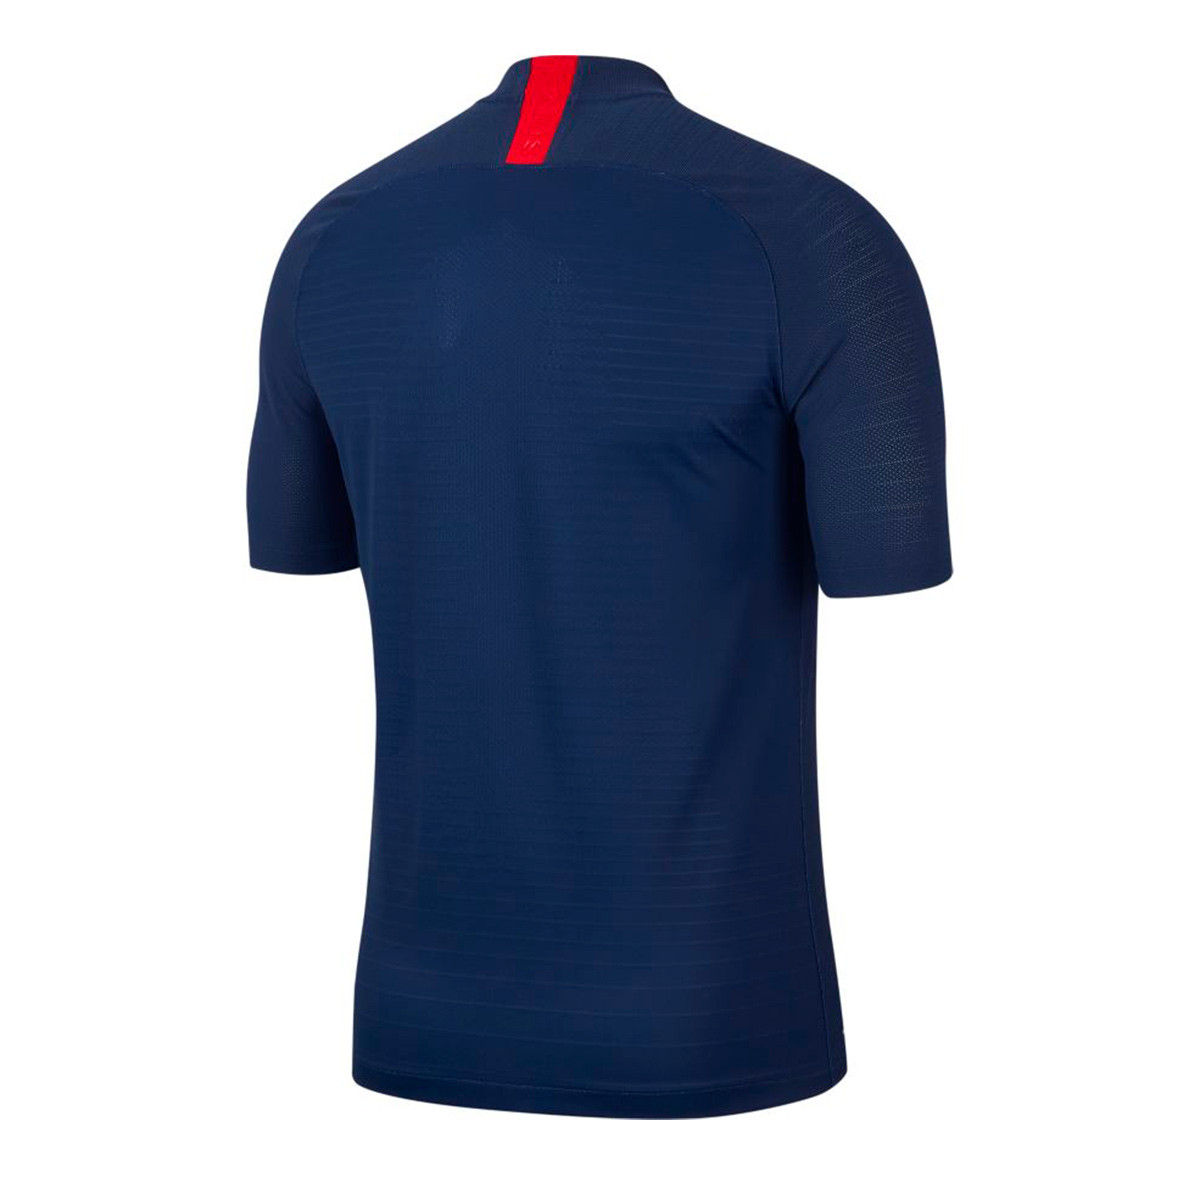 official photos fee36 1bdc1 Camiseta Paris Saint-Germain Vapor Match SS Primera Equipación 2019-2020  Midnight navy-White